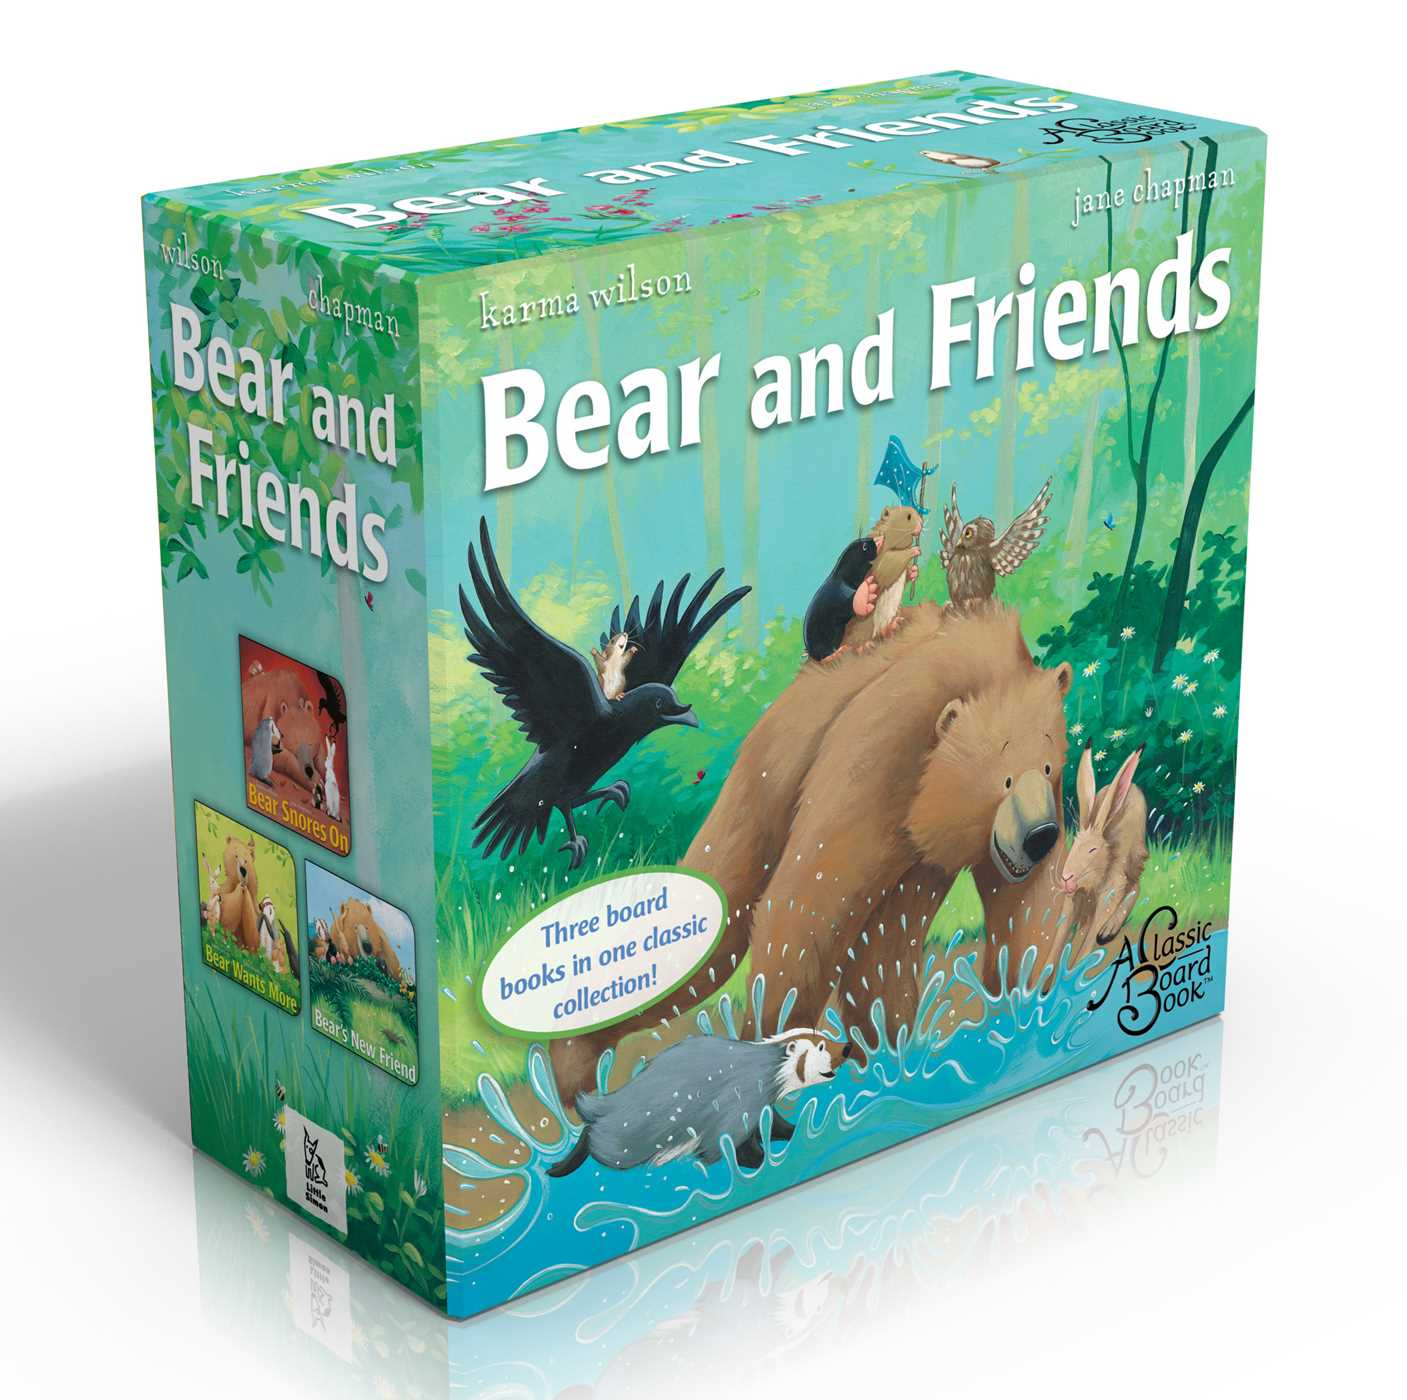 Bear-and-friends-9781481430333_hr